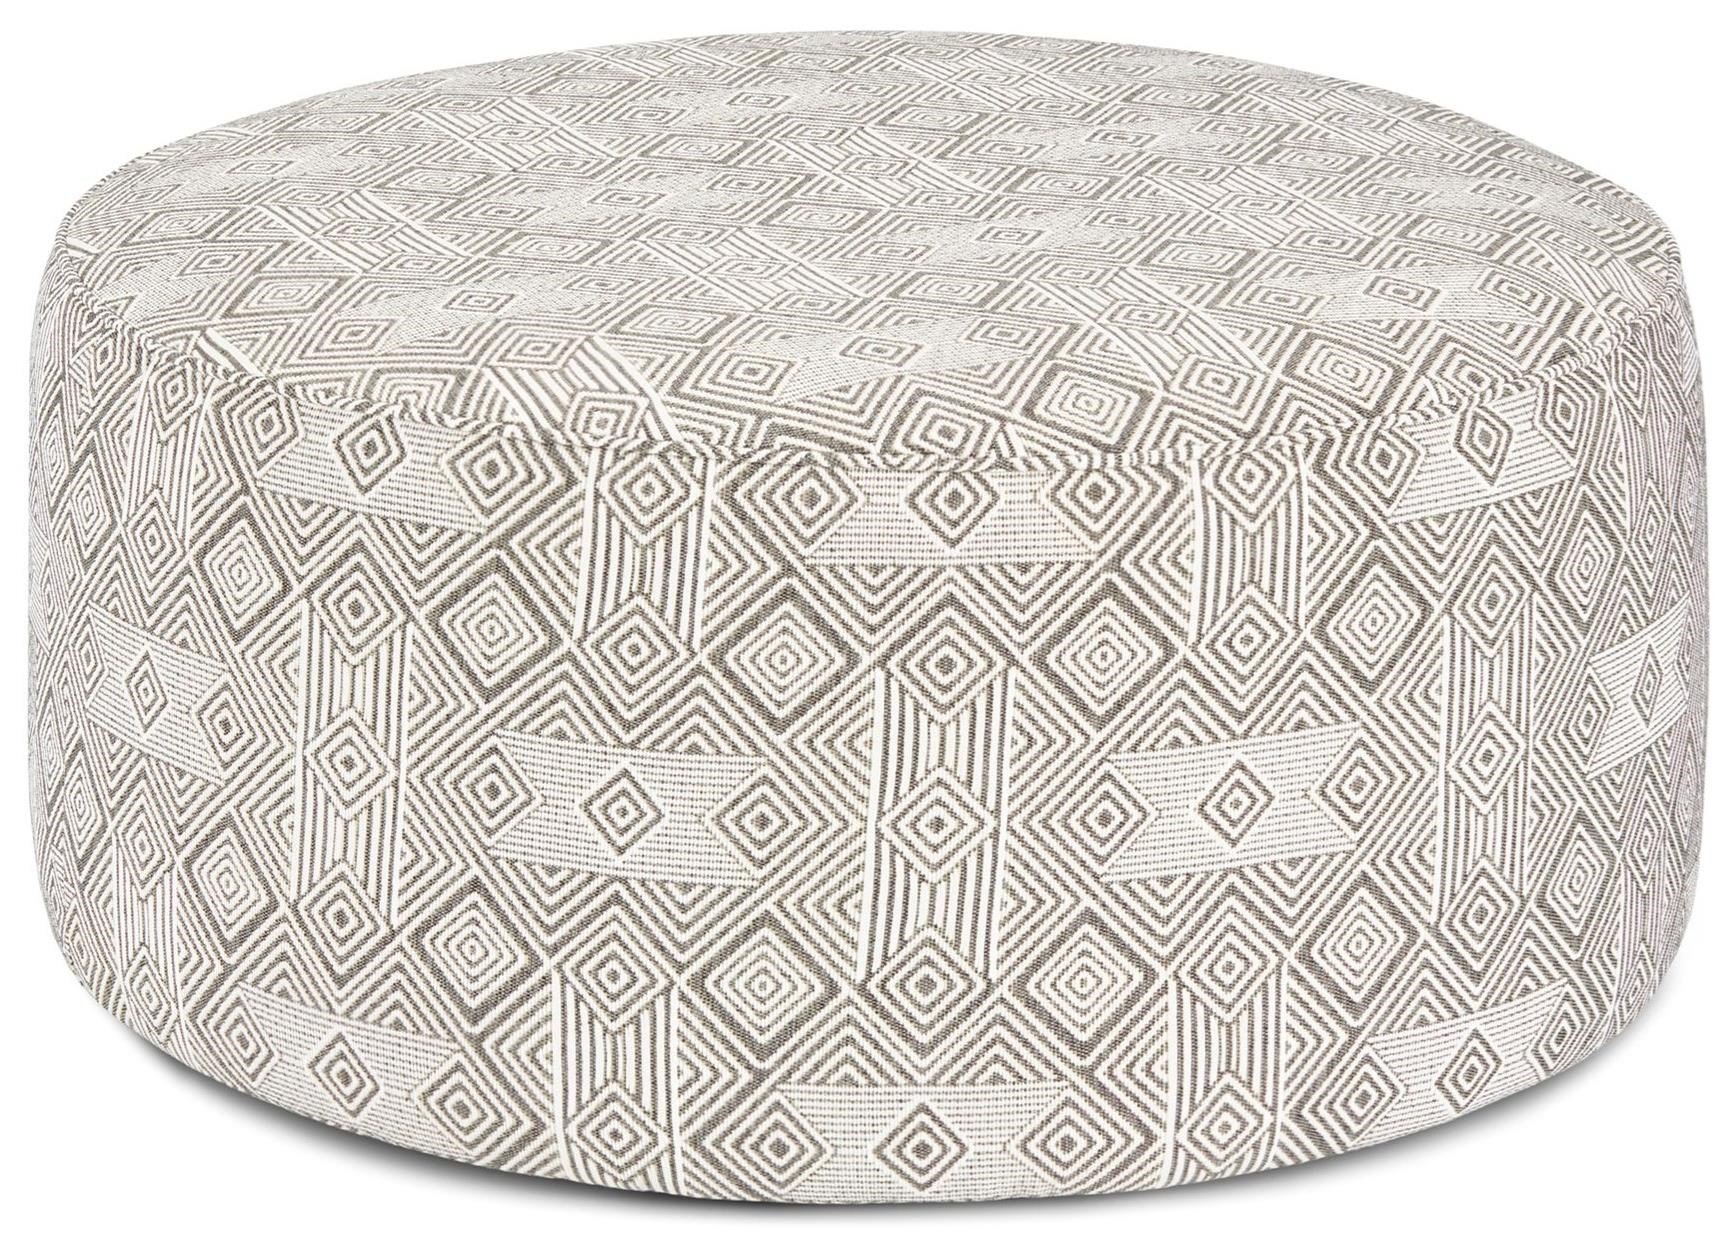 140 Cocktail Ottoman by FN at Lindy's Furniture Company